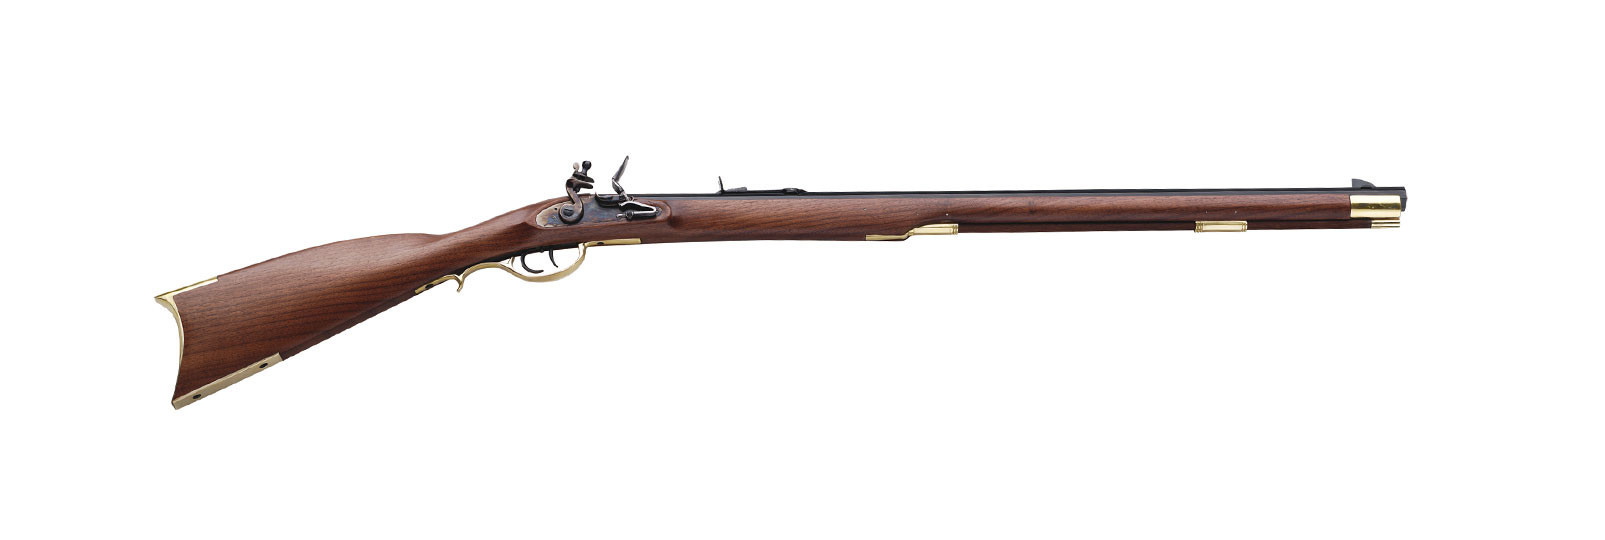 Scout Rifle flintlock model